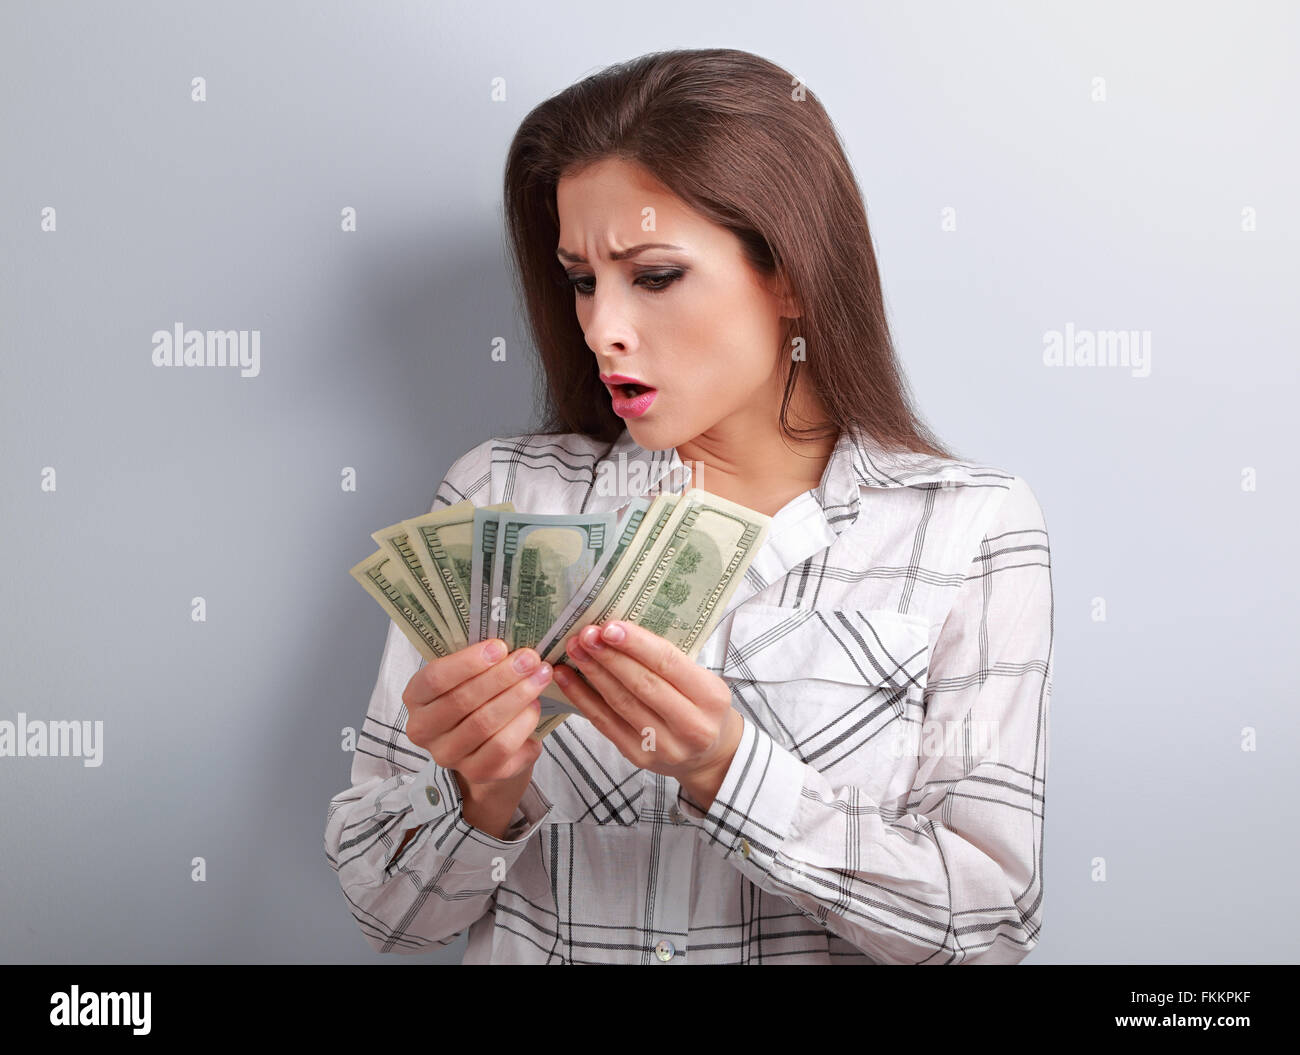 Young surprising woman looking and counting her salary and thinking how little money she have earned and how she - Stock Image